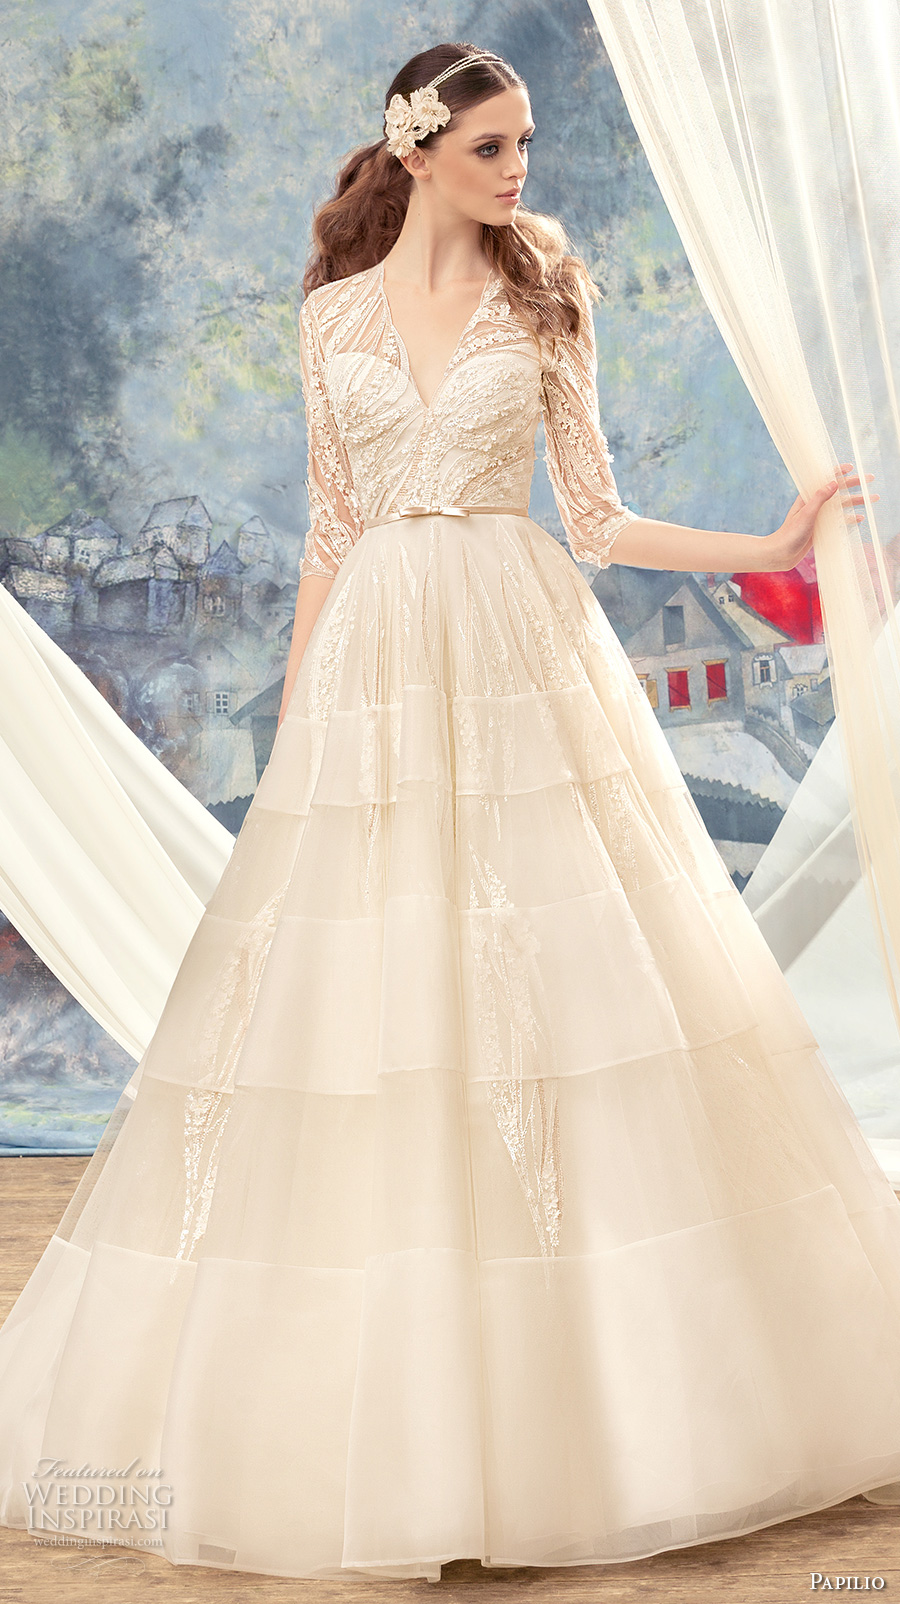 papilio 2017 bridal half sleeves illusion v sweetheart neckline heavily embellished bodice layered skirt romantic a  line wedding dress covered lace back sweep train (cedarbird) mv